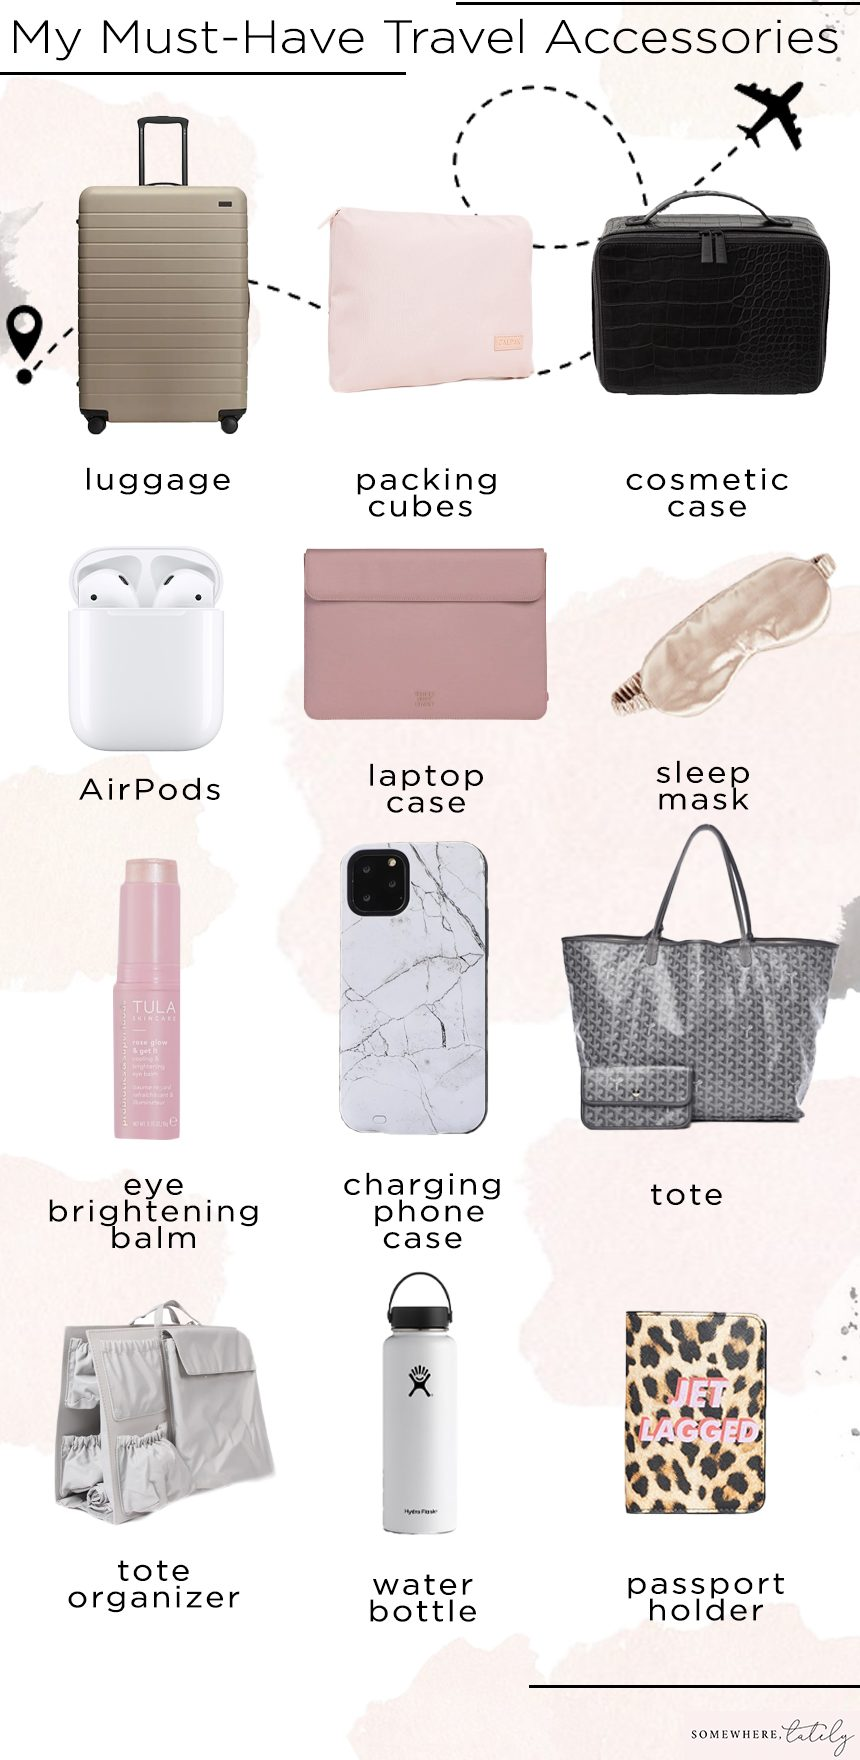 Meggan's Must-Have Travel Accessories